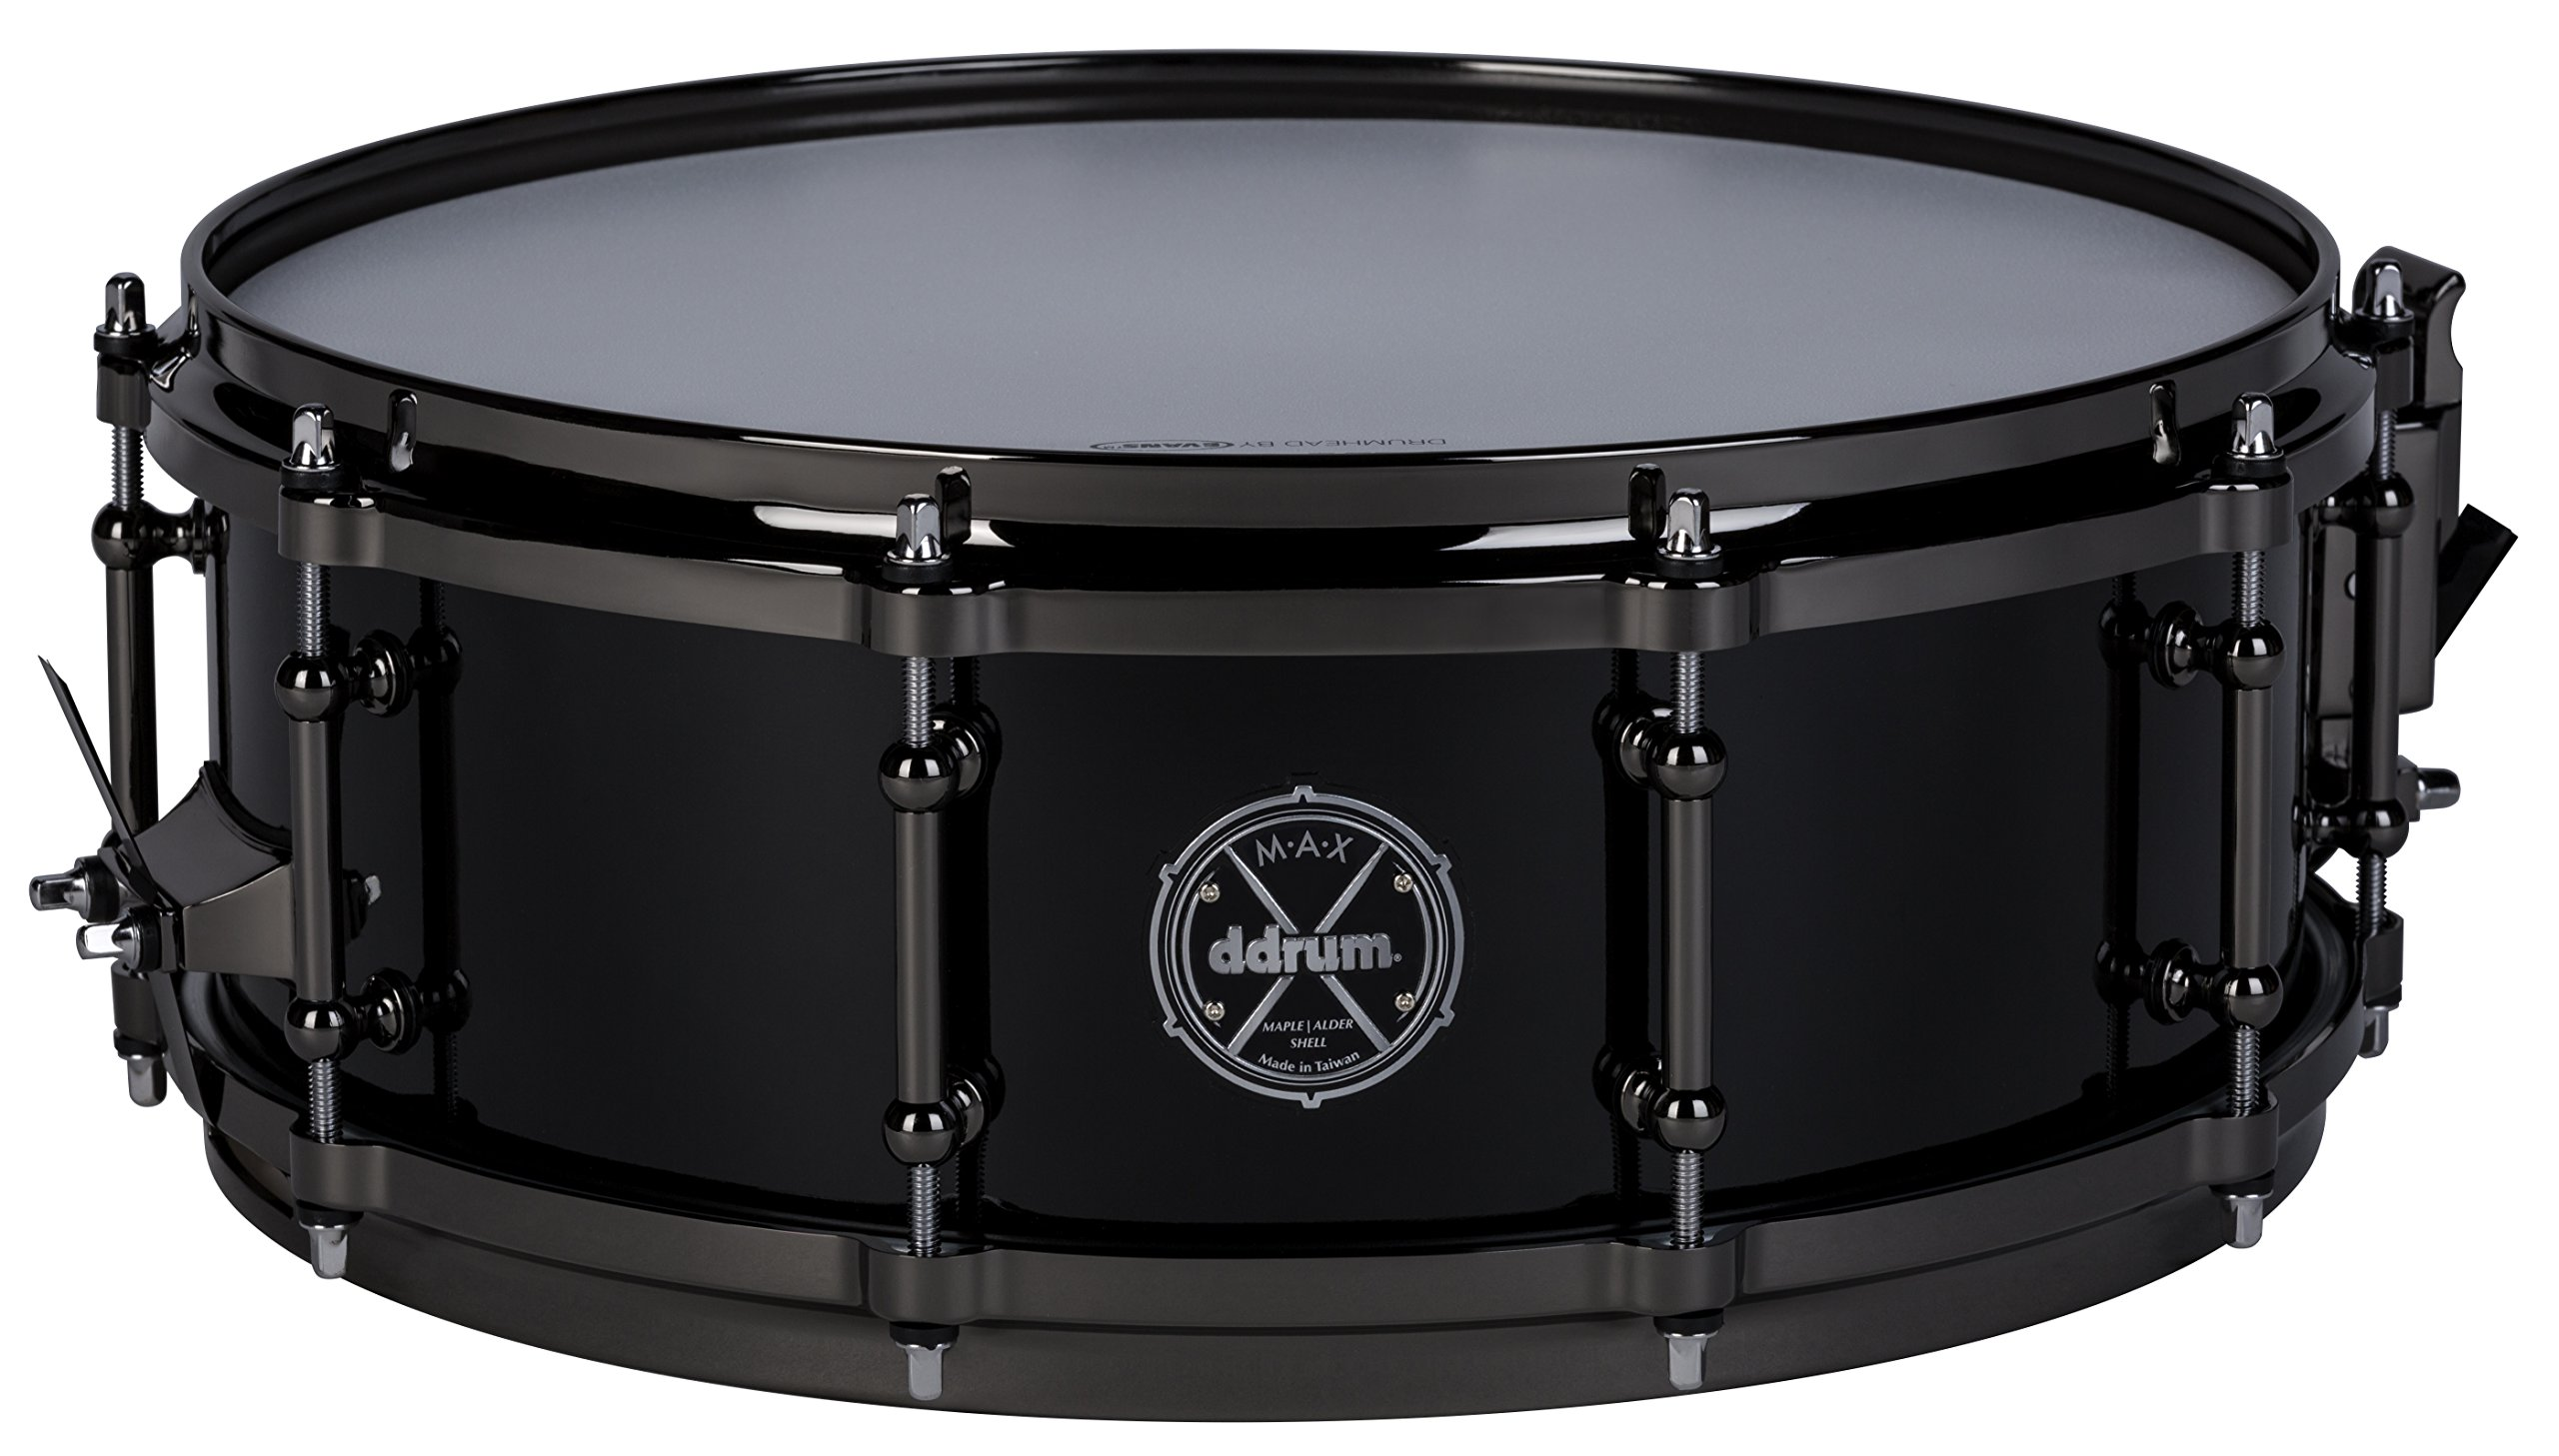 ddrum MAX Series 5x14 Snare Drum-Piano Black (MAXSD5X14PB